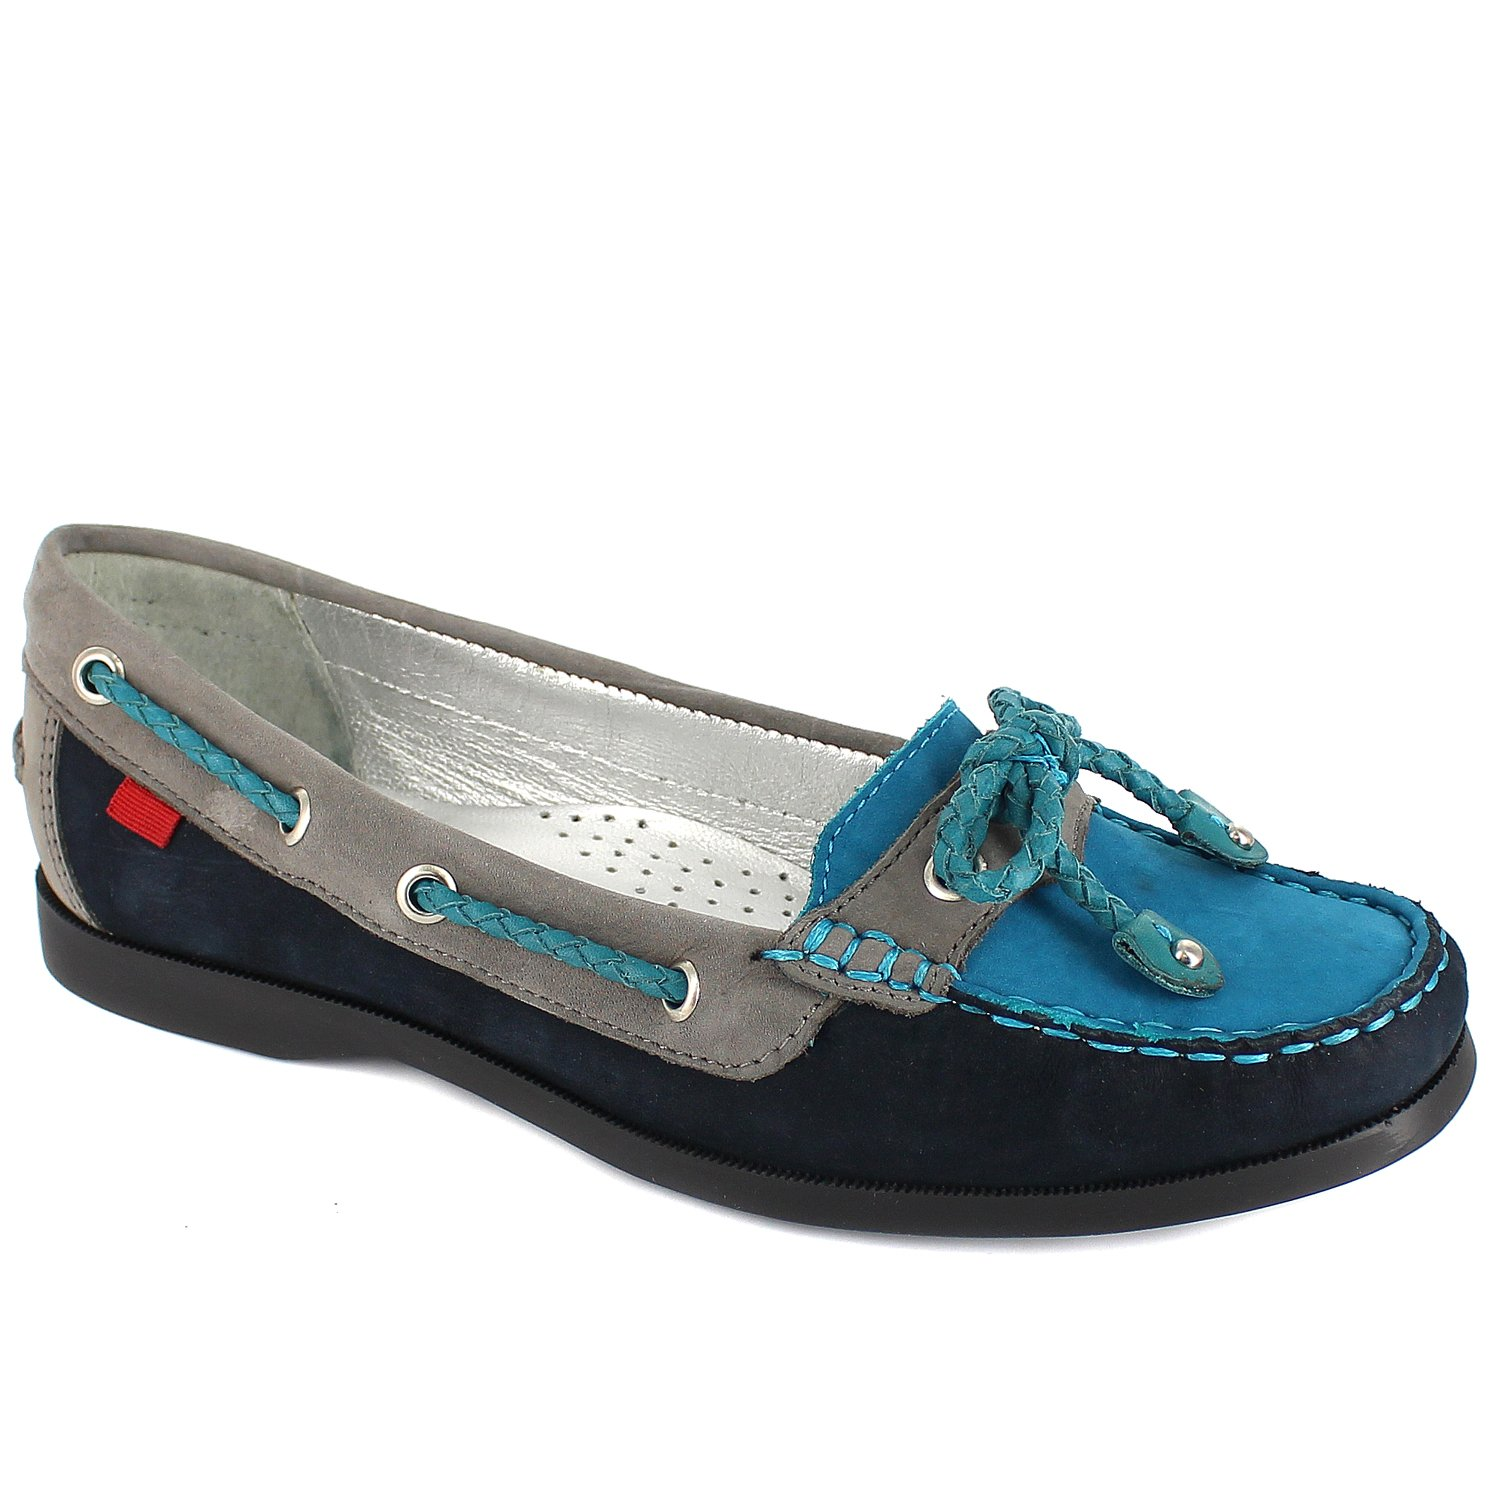 Marc Joseph New York Womens Liberty Cruise Leather Lining Shoe With Bow Tie Multi Navy Size 8.5